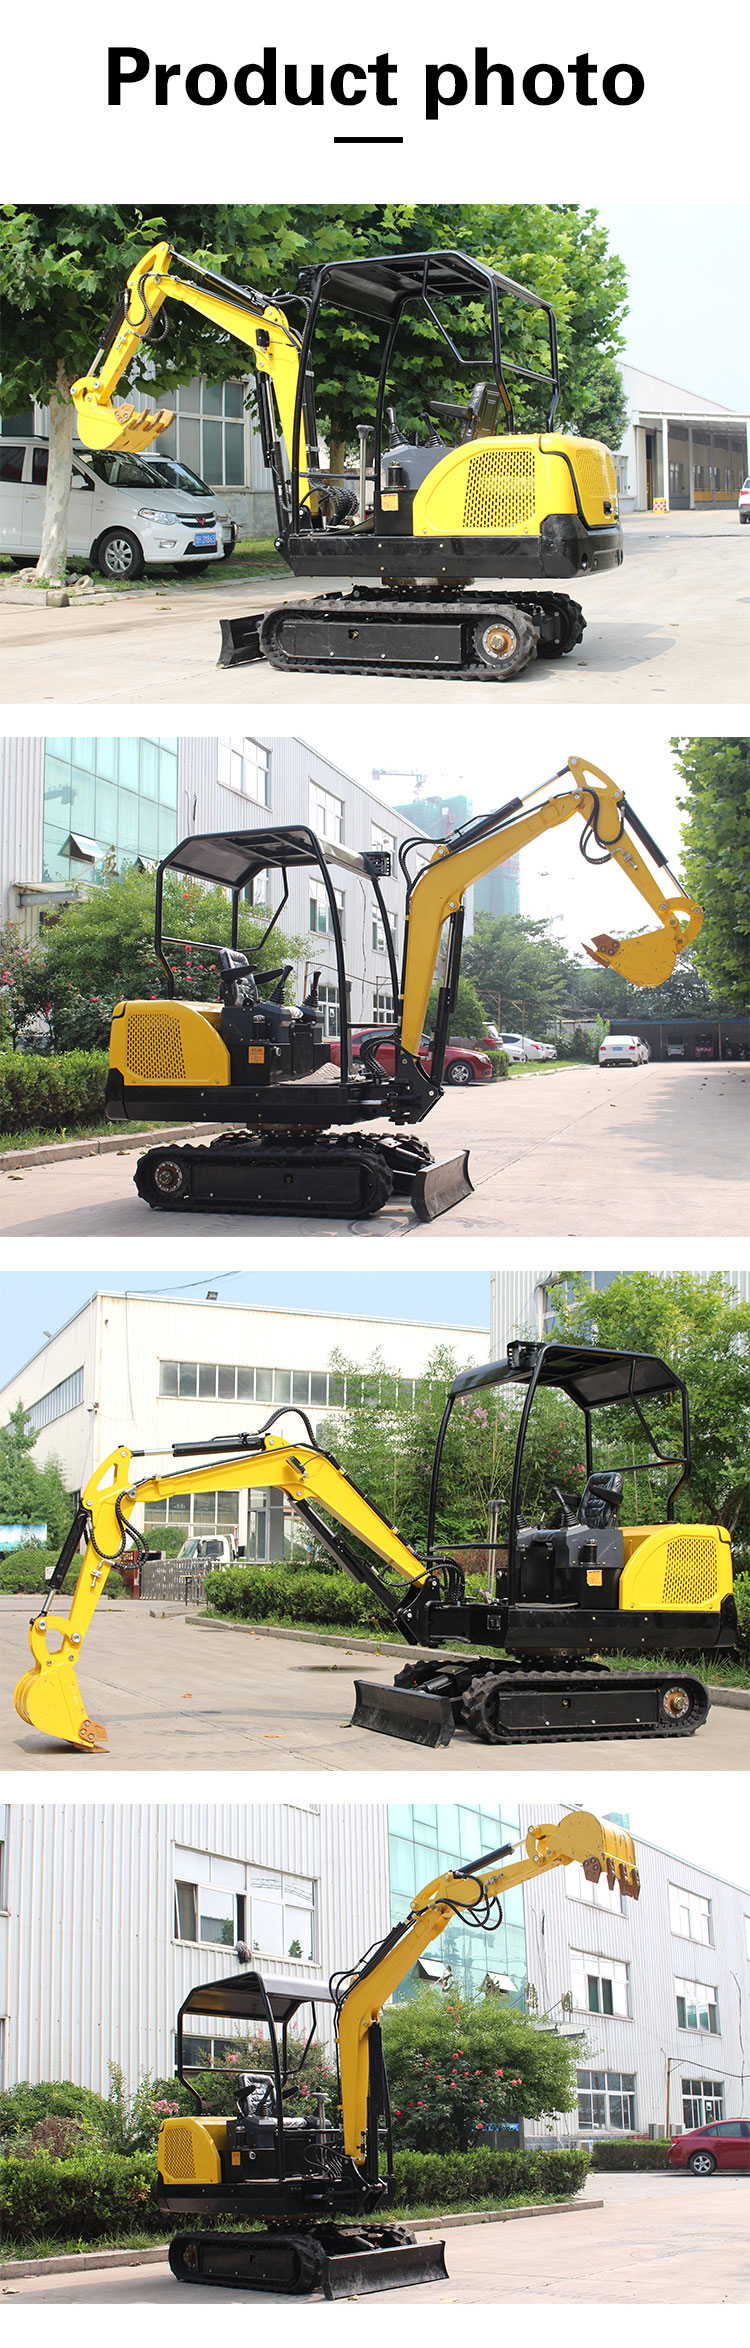 R330 small orchard excavator